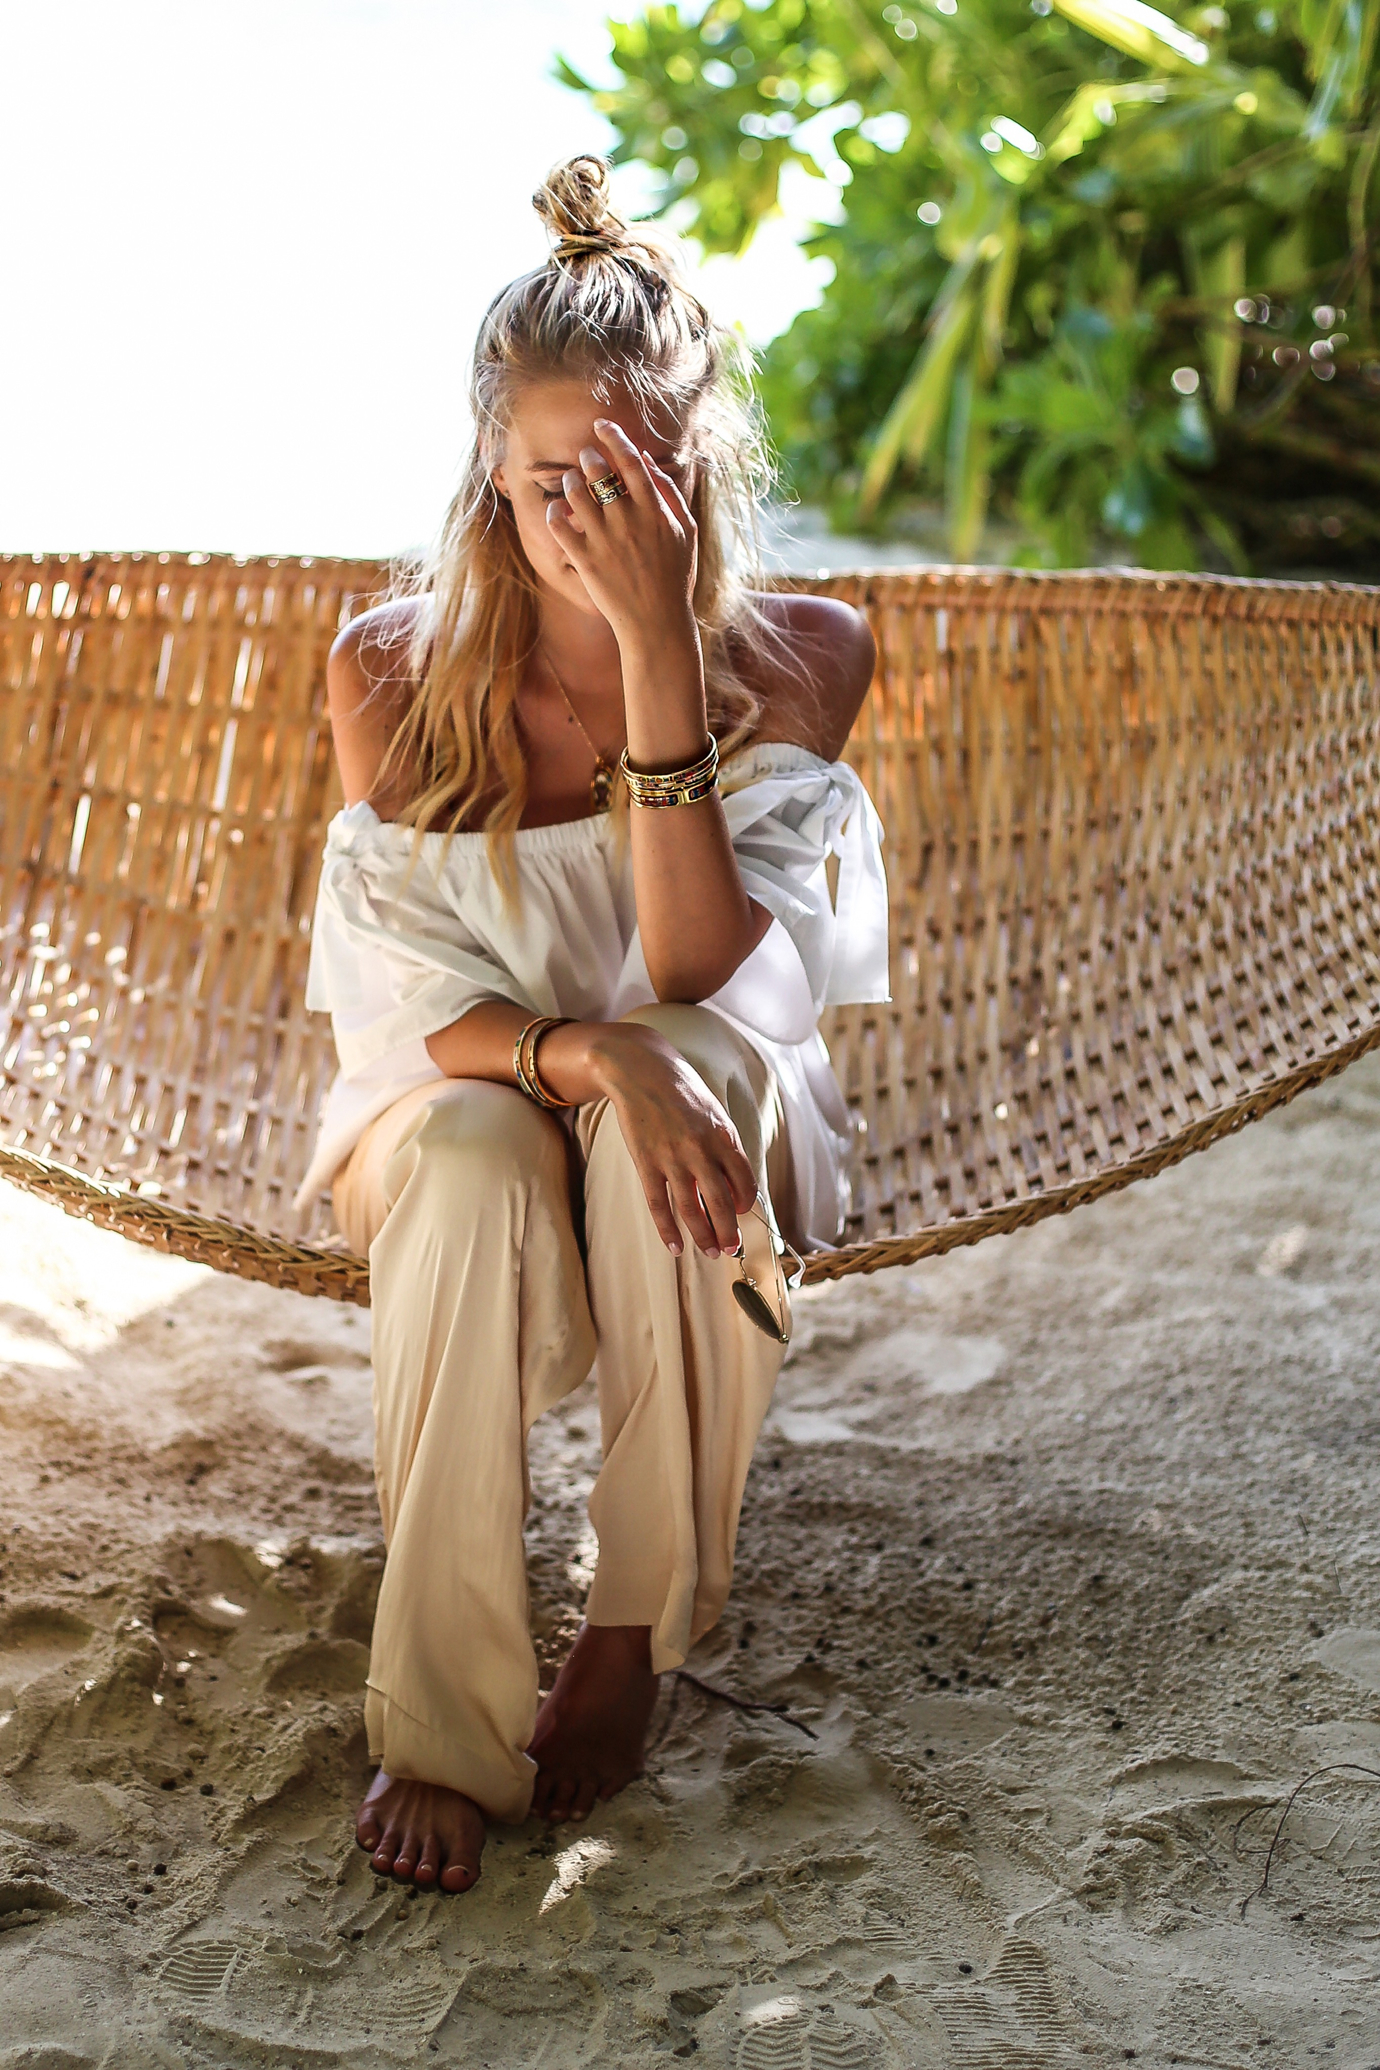 Freywille_Maldives_ohhcouture09